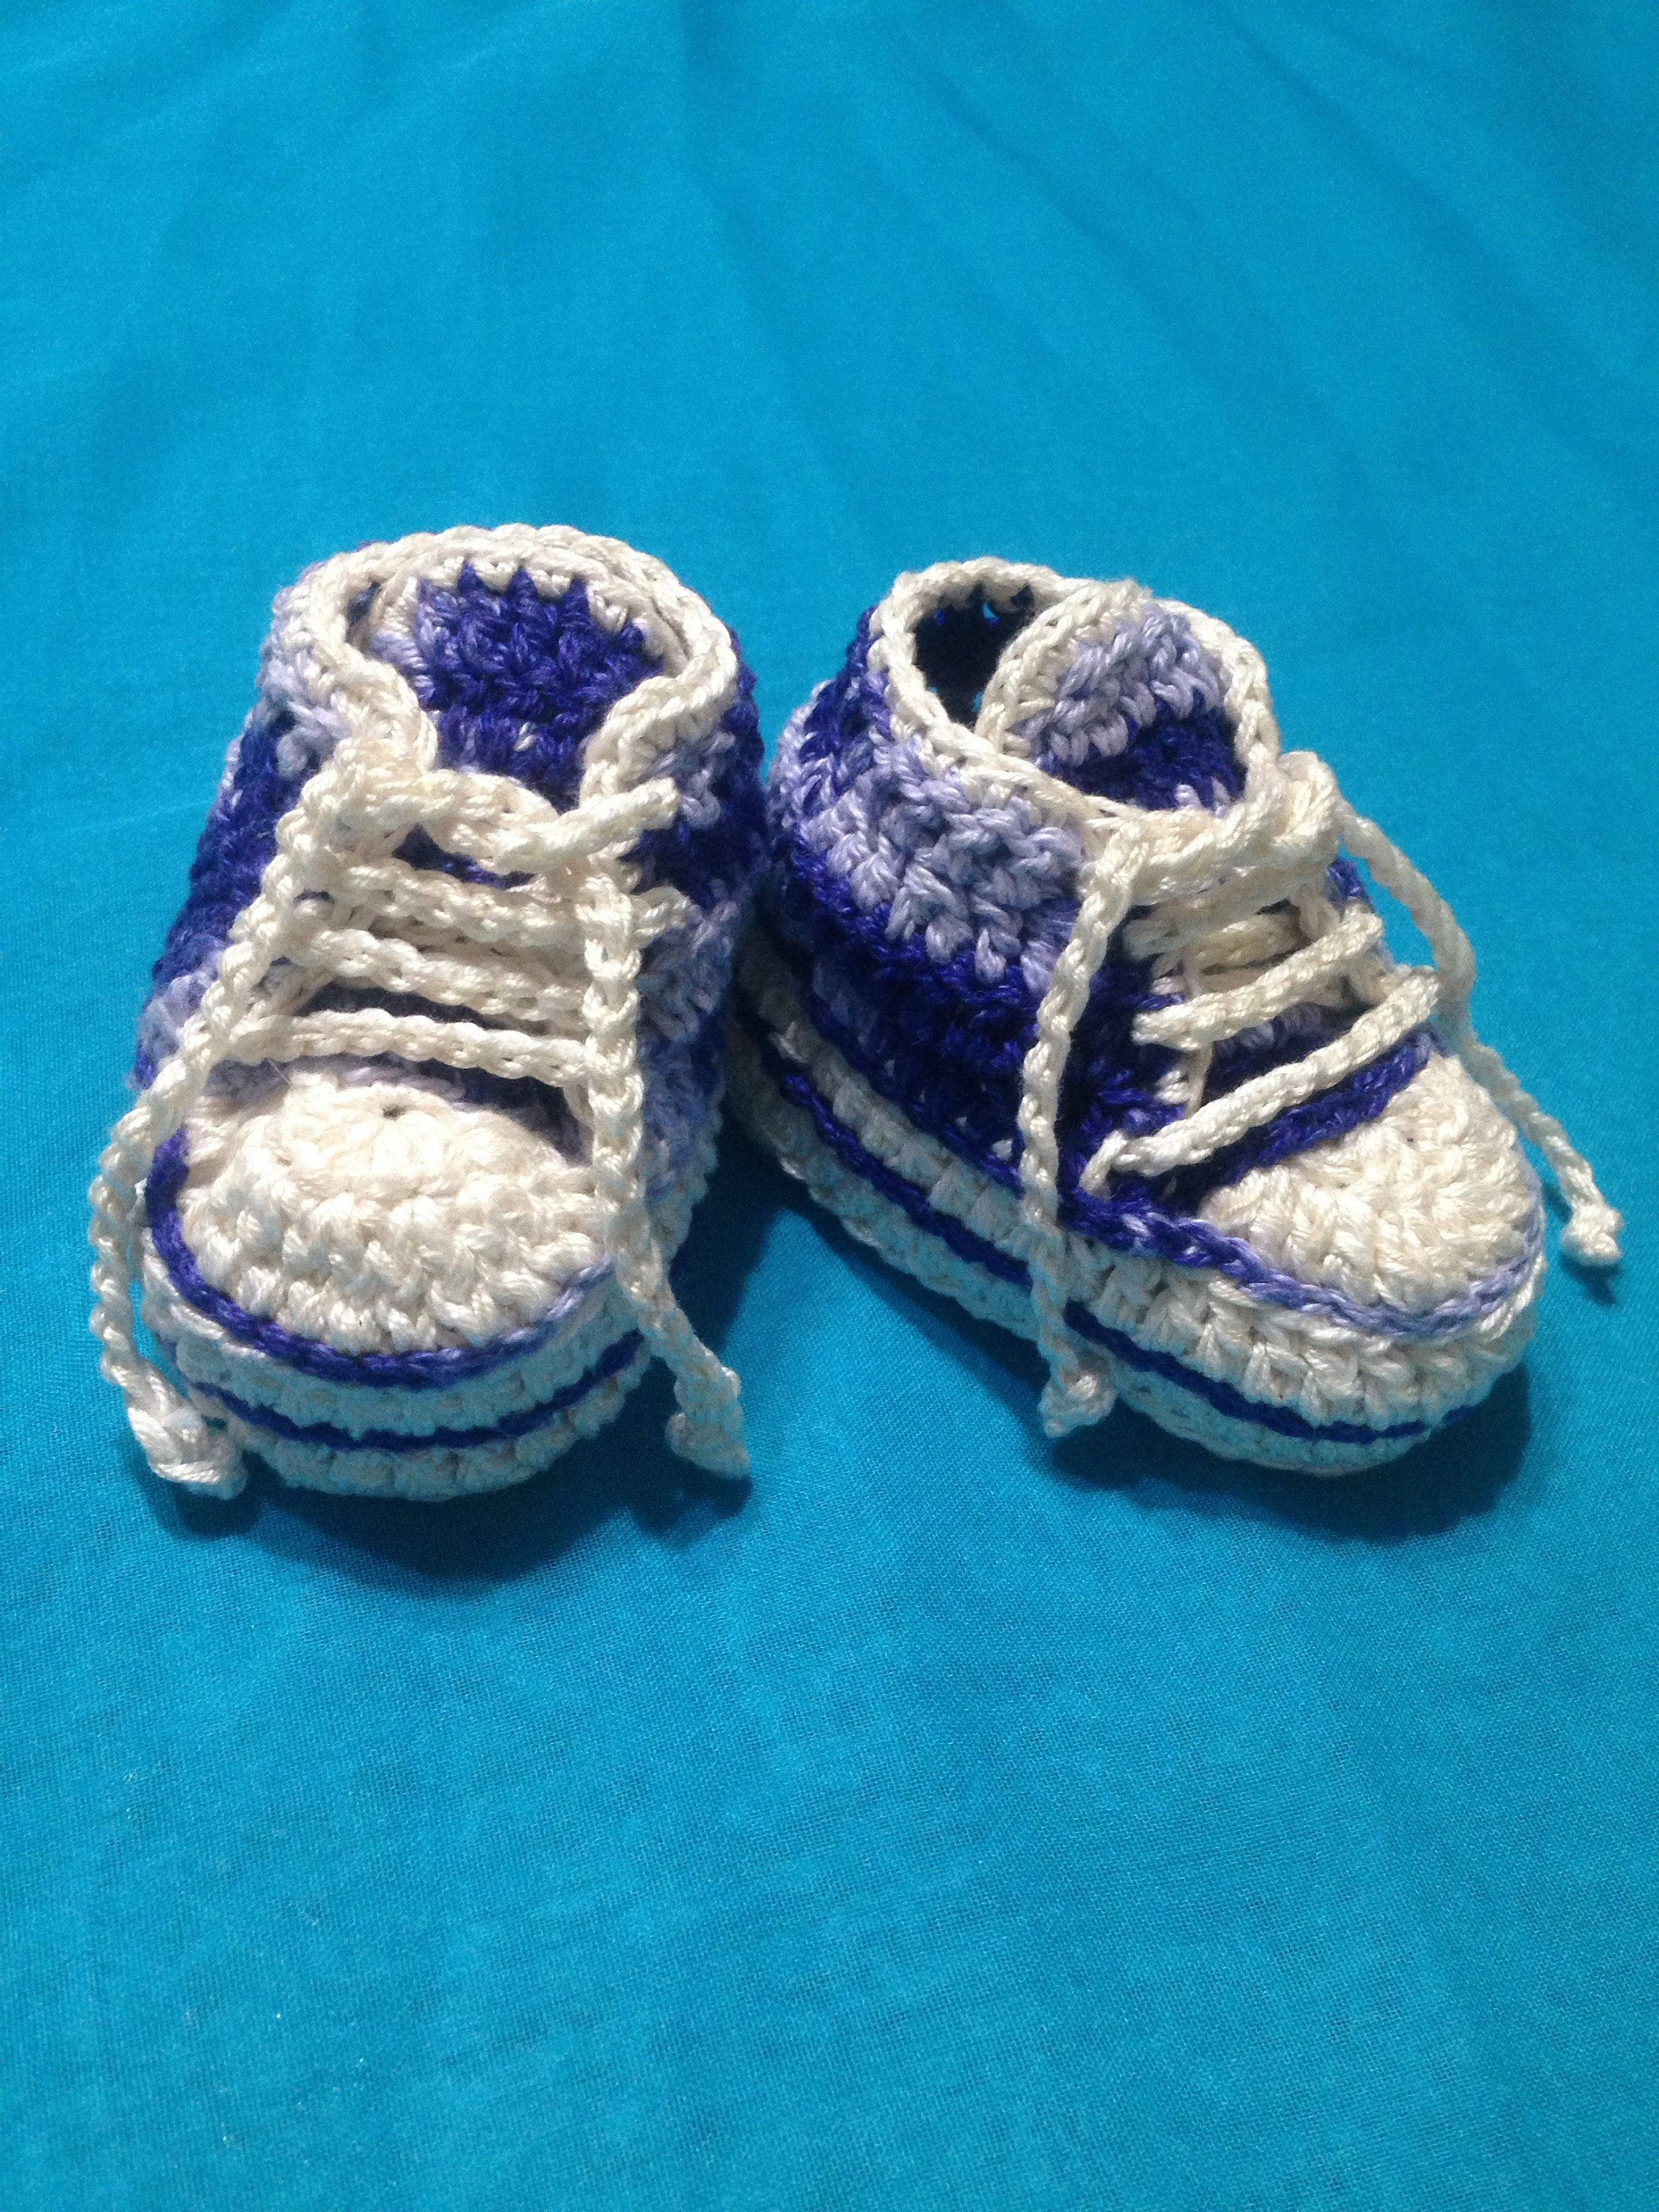 reputable site 30735 32500 Excited to share this item from my  etsy shop  Crochet Baby Shoes Socks  Sneakers